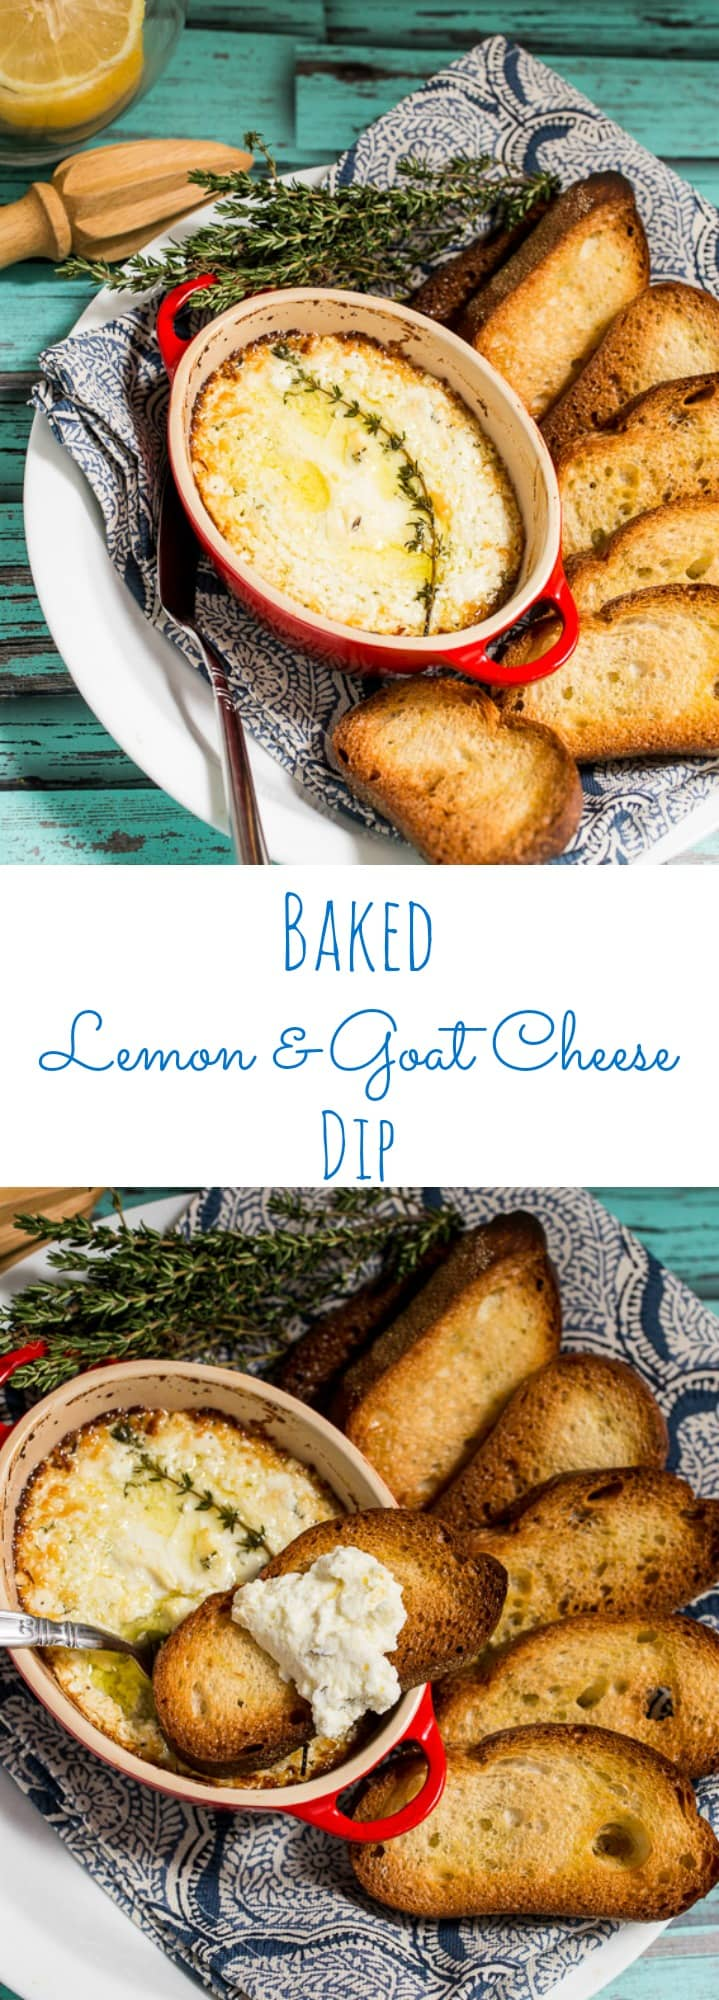 Baked Lemon and Goat Cheese Dip